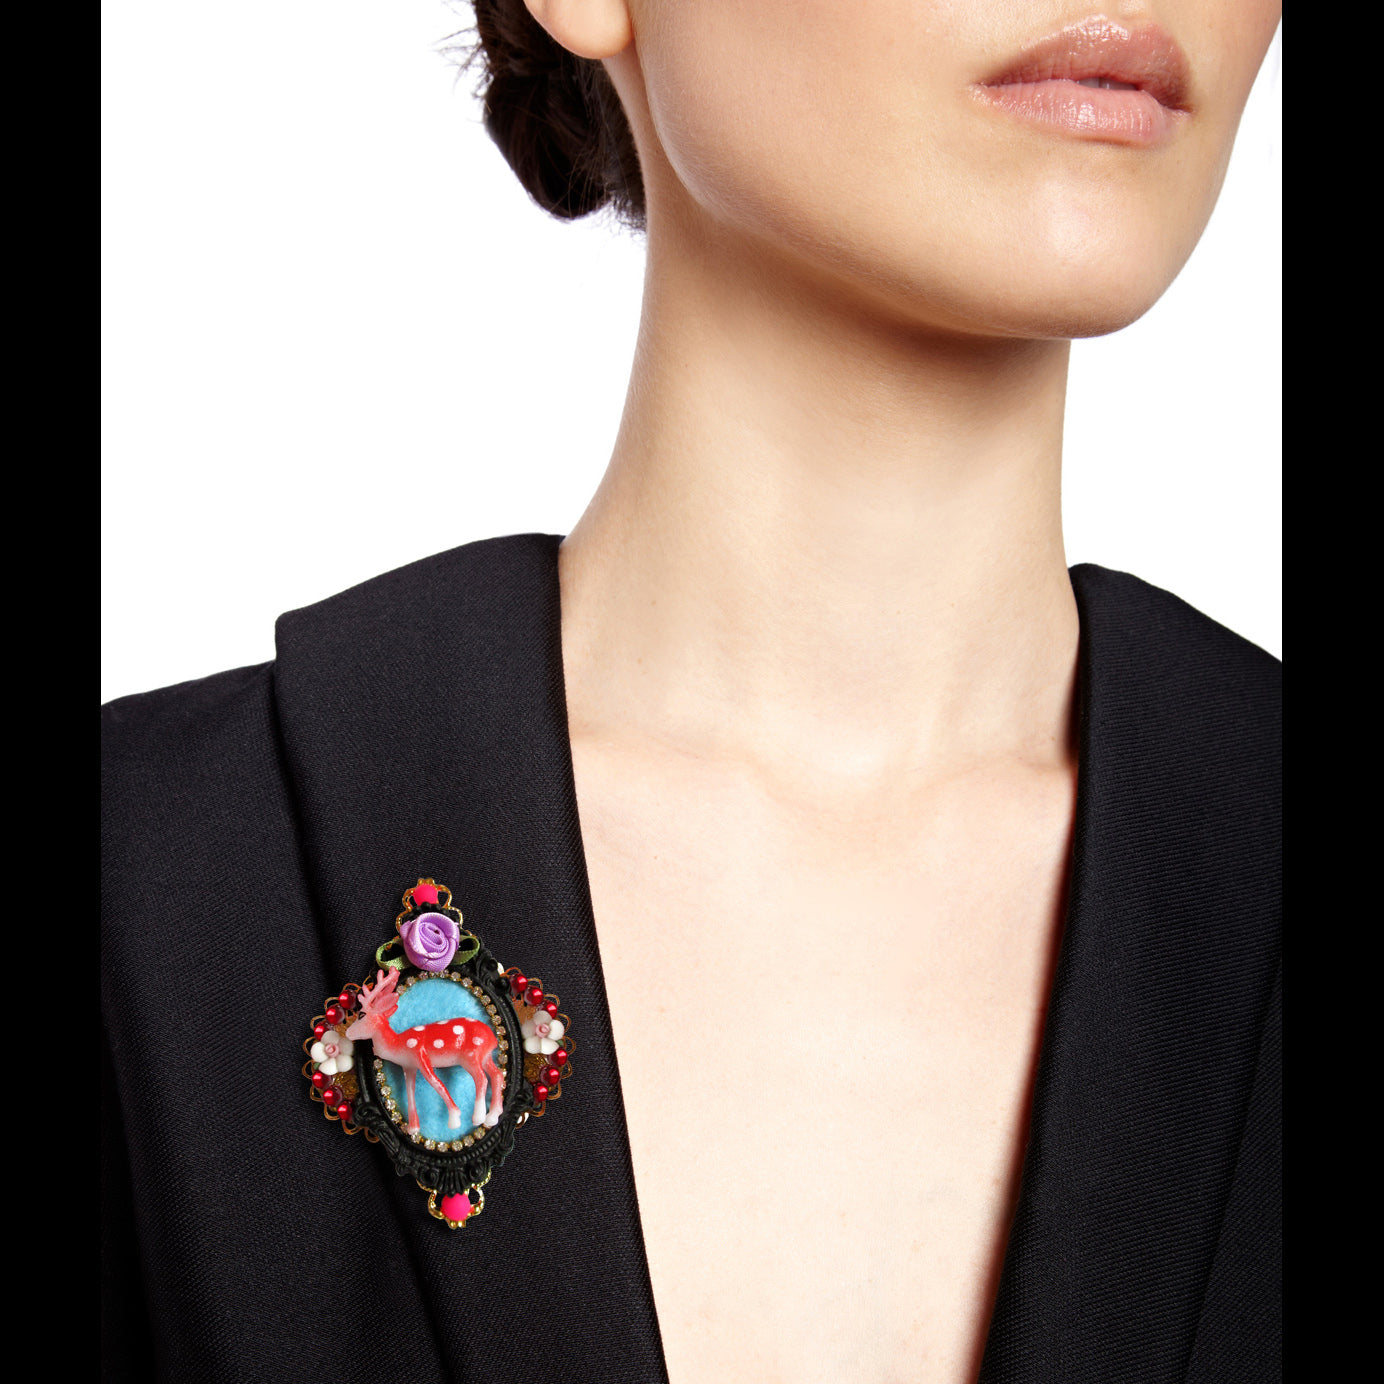 mouchkine jewelry bambi baroque brooch, a haute couture jewel for a chic and elegant style